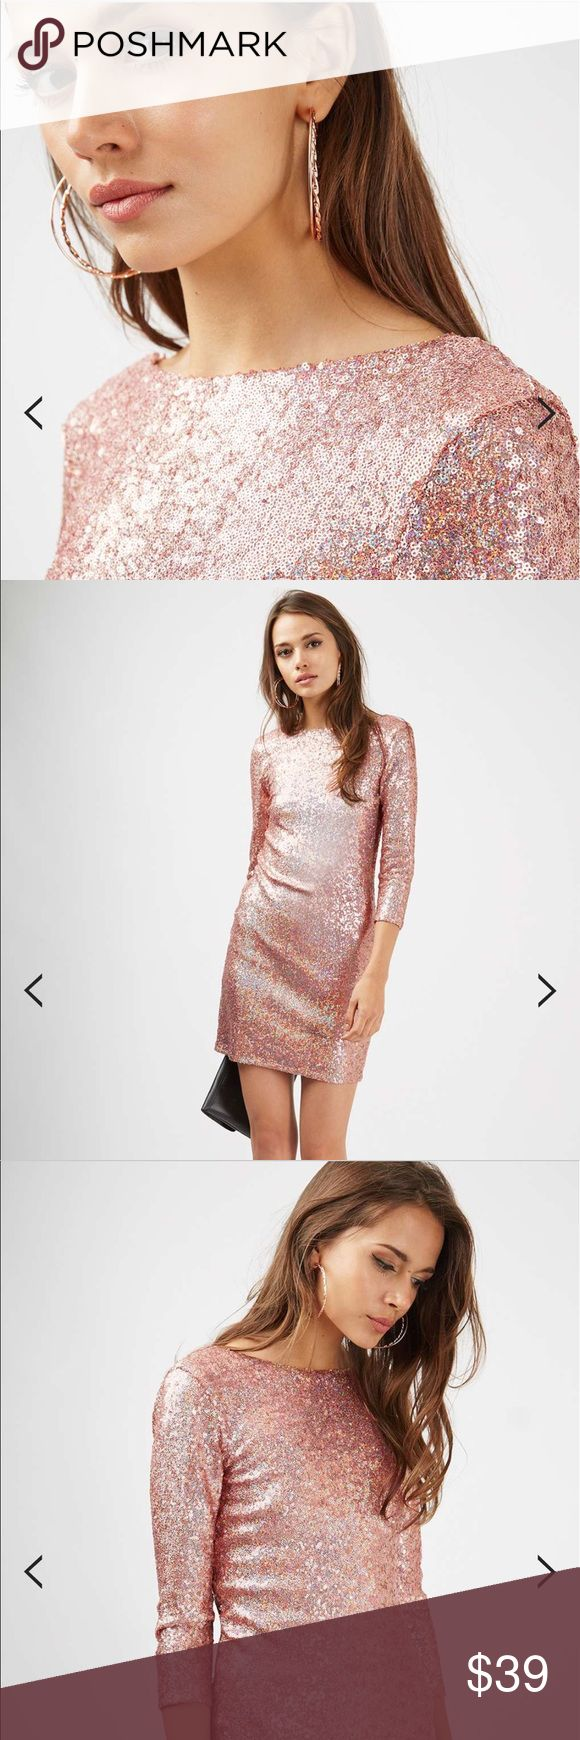 """Topshop Slash Neck Sequin Mini Dress These pictures don't do the dress justice!  Sequins remain a firm favourite for the party set. We love this pink mini dress, with a slash neck and ¾ length sleeves, perfect for transitioning seasons. Wear with metallic heels and an oversized clutch for going-out glamour. 100% Nylon. Approximately 35"""" length.  🚫 No Trades 💯% Authentic  💵 Offers welcome 💰Bundled discount 📦 Ships in 1-2 days Topshop Dresses Mini"""